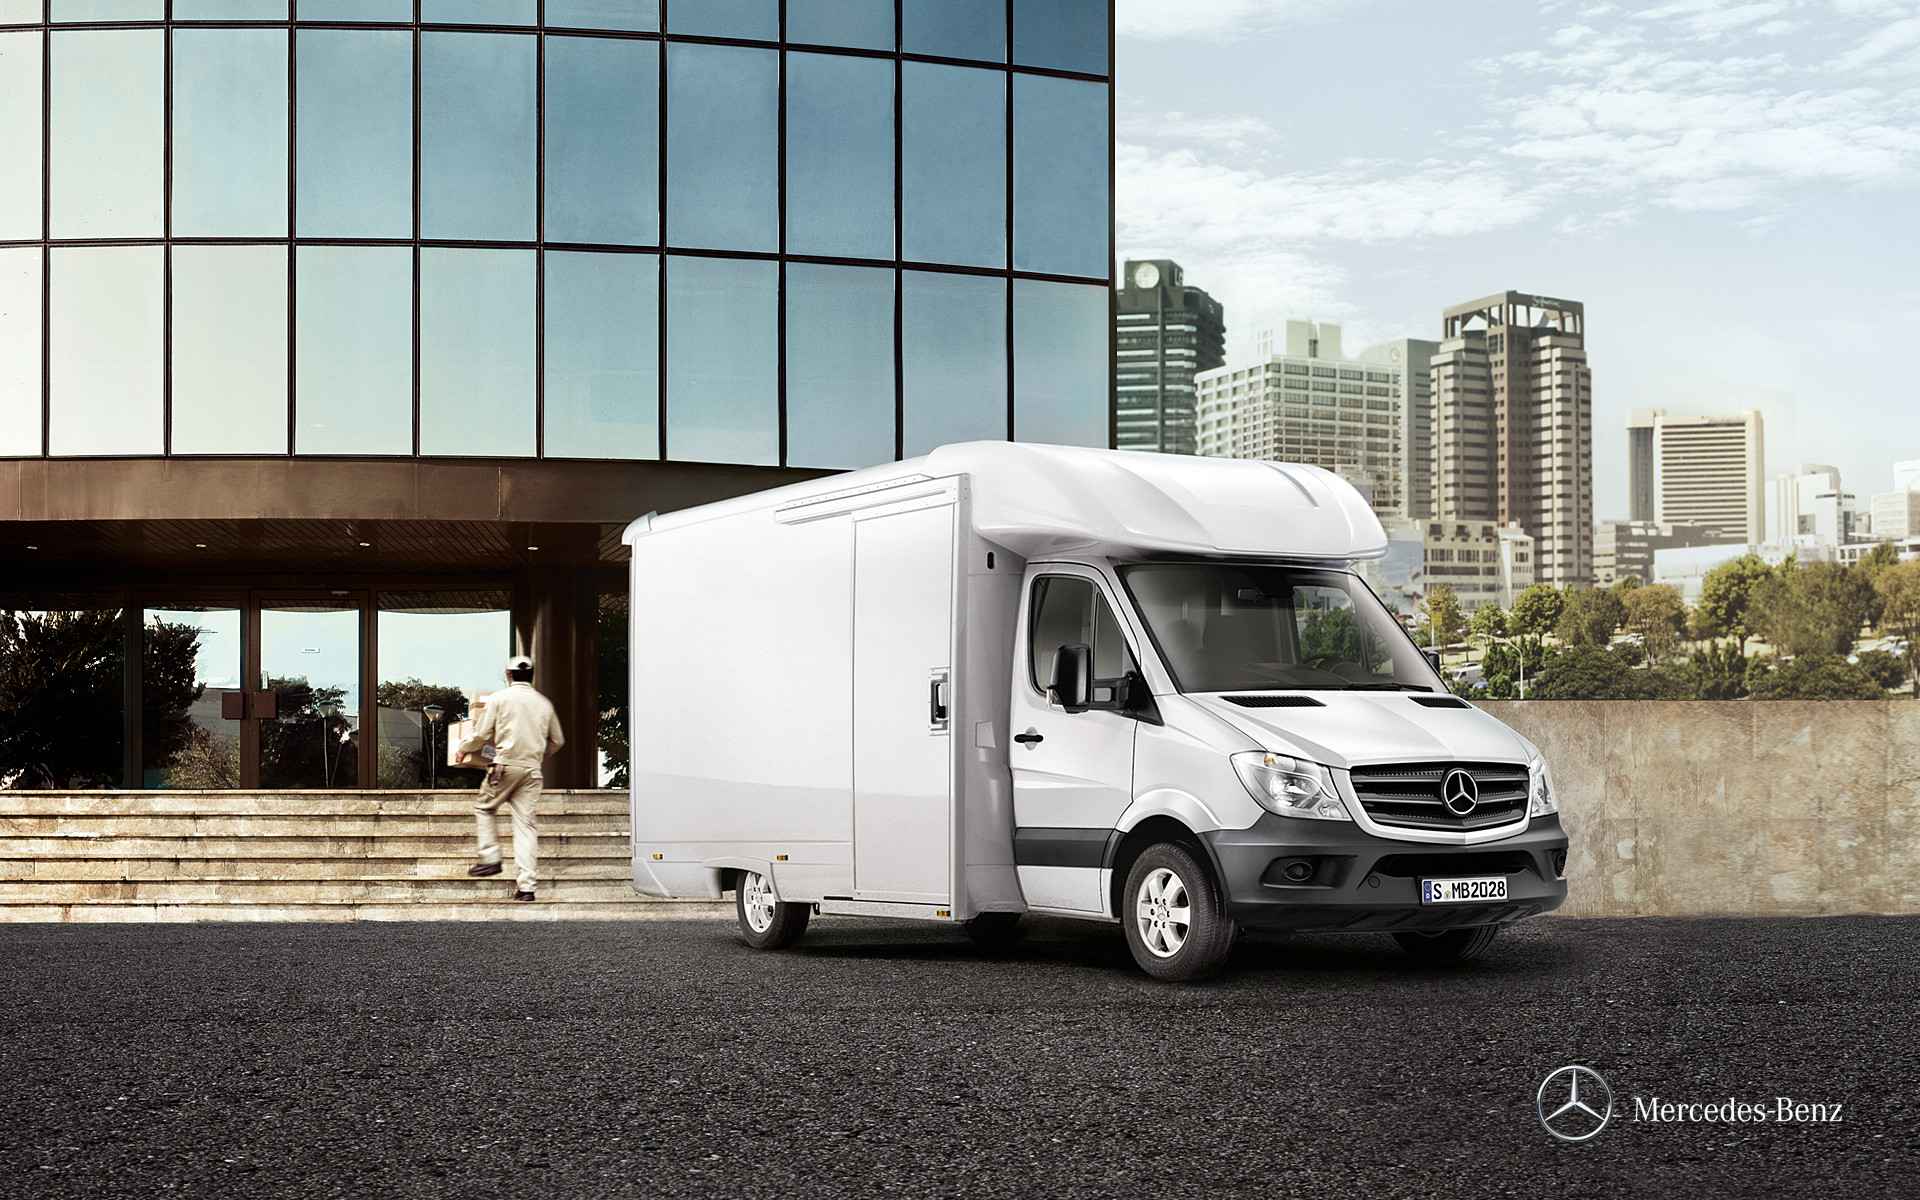 Фото автомобиля Mercedes-Benz Sprinter шасси 2-дв.